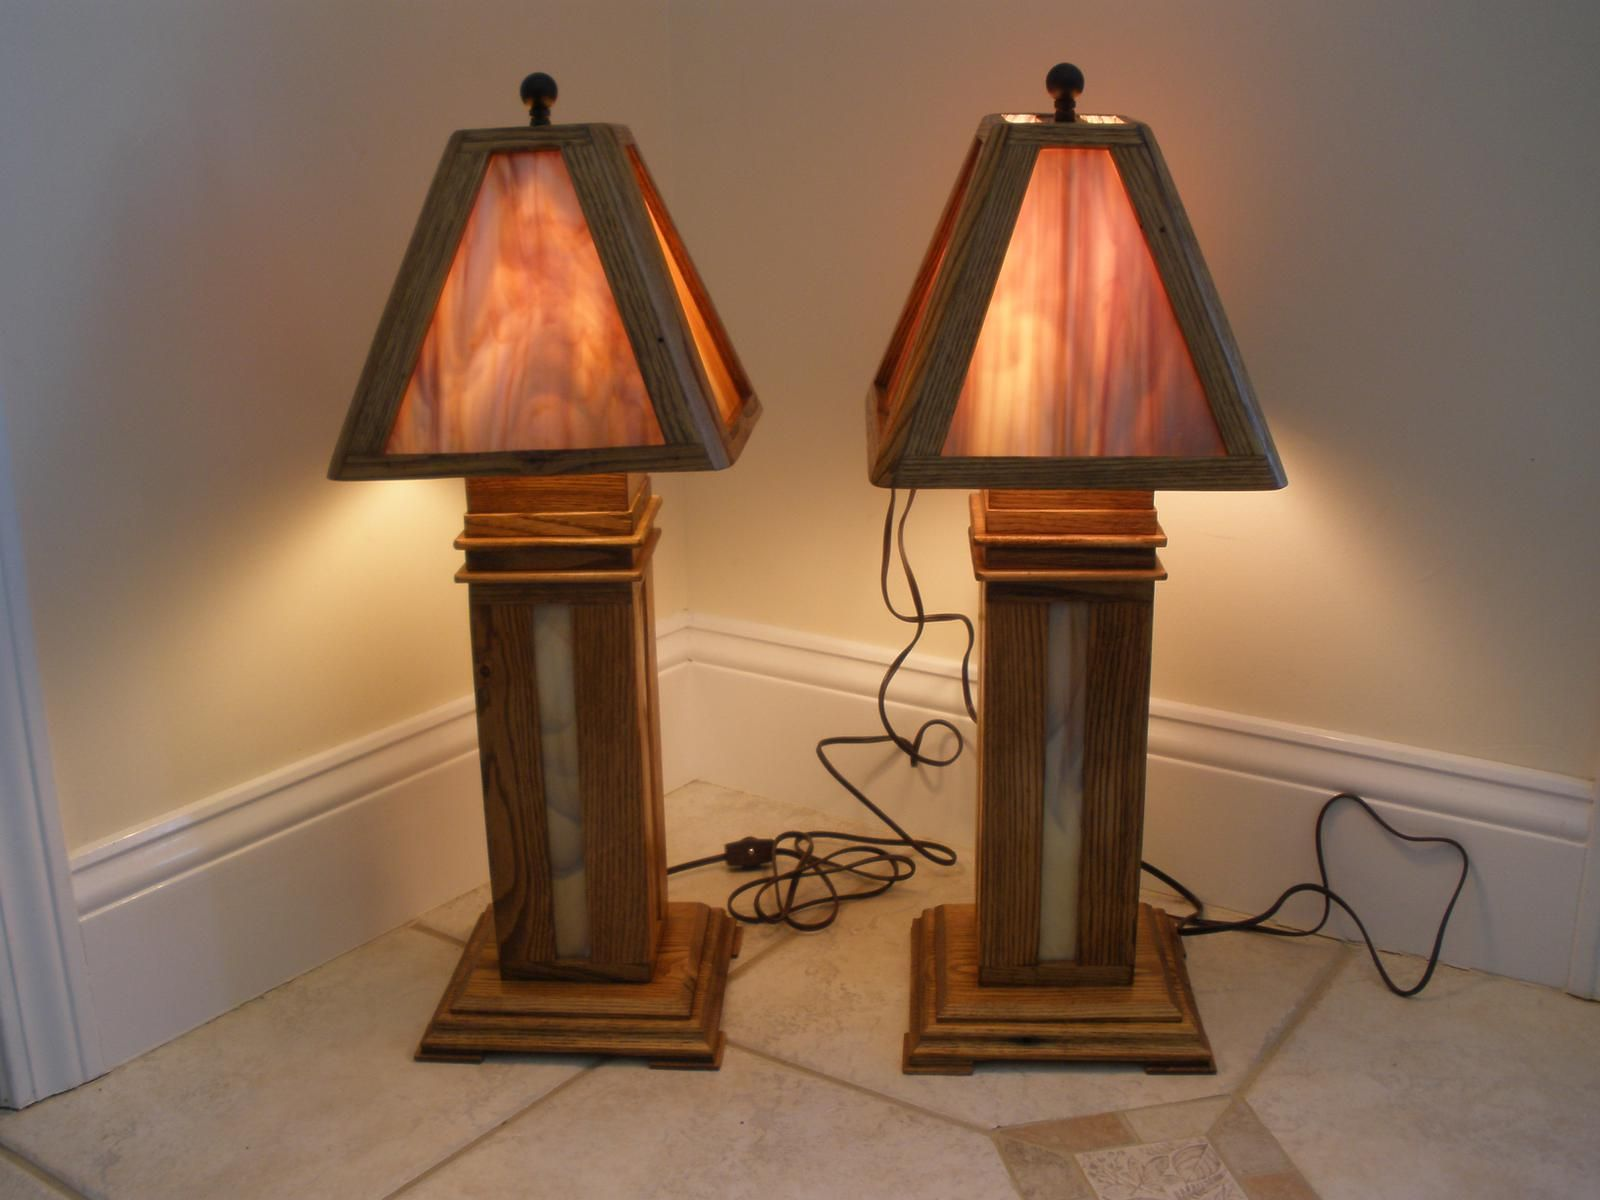 Custom Chestnut Stained Glass Lamps By Fwc Woodworking